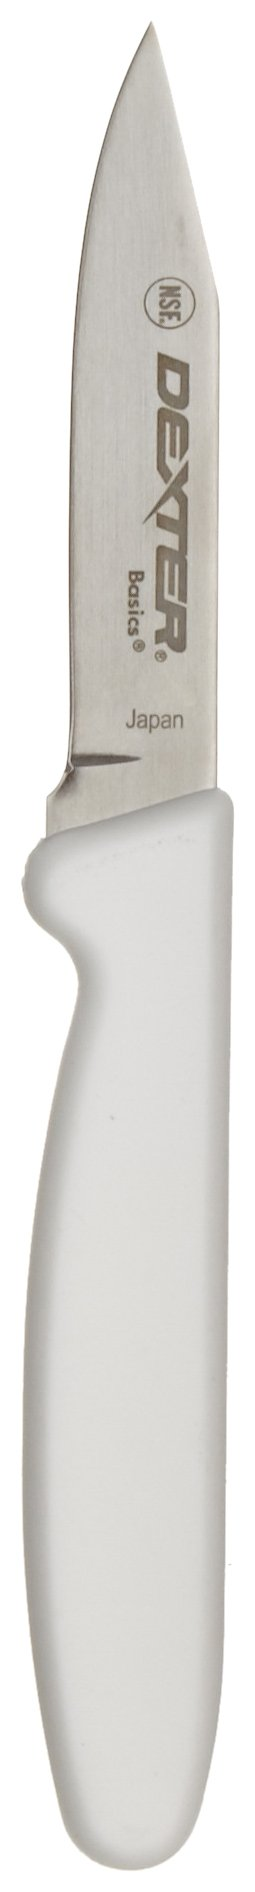 Dexter Russell P94816 3'' Basics Clip Point Paring Knife-White